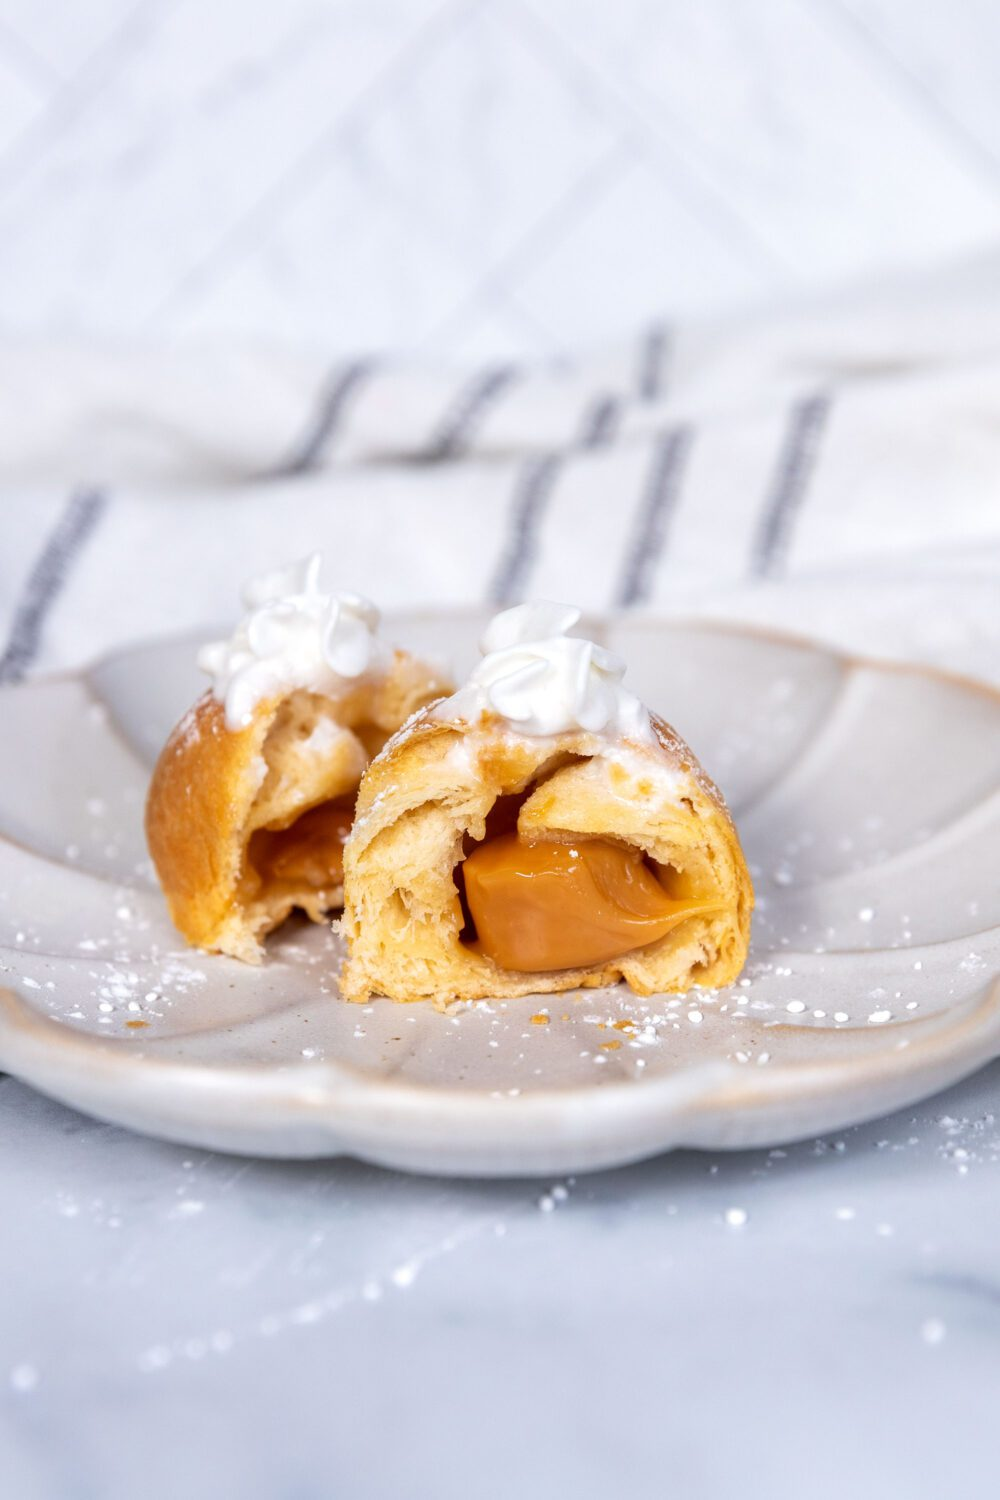 caramel oozing out of a puff with whipped cream on top